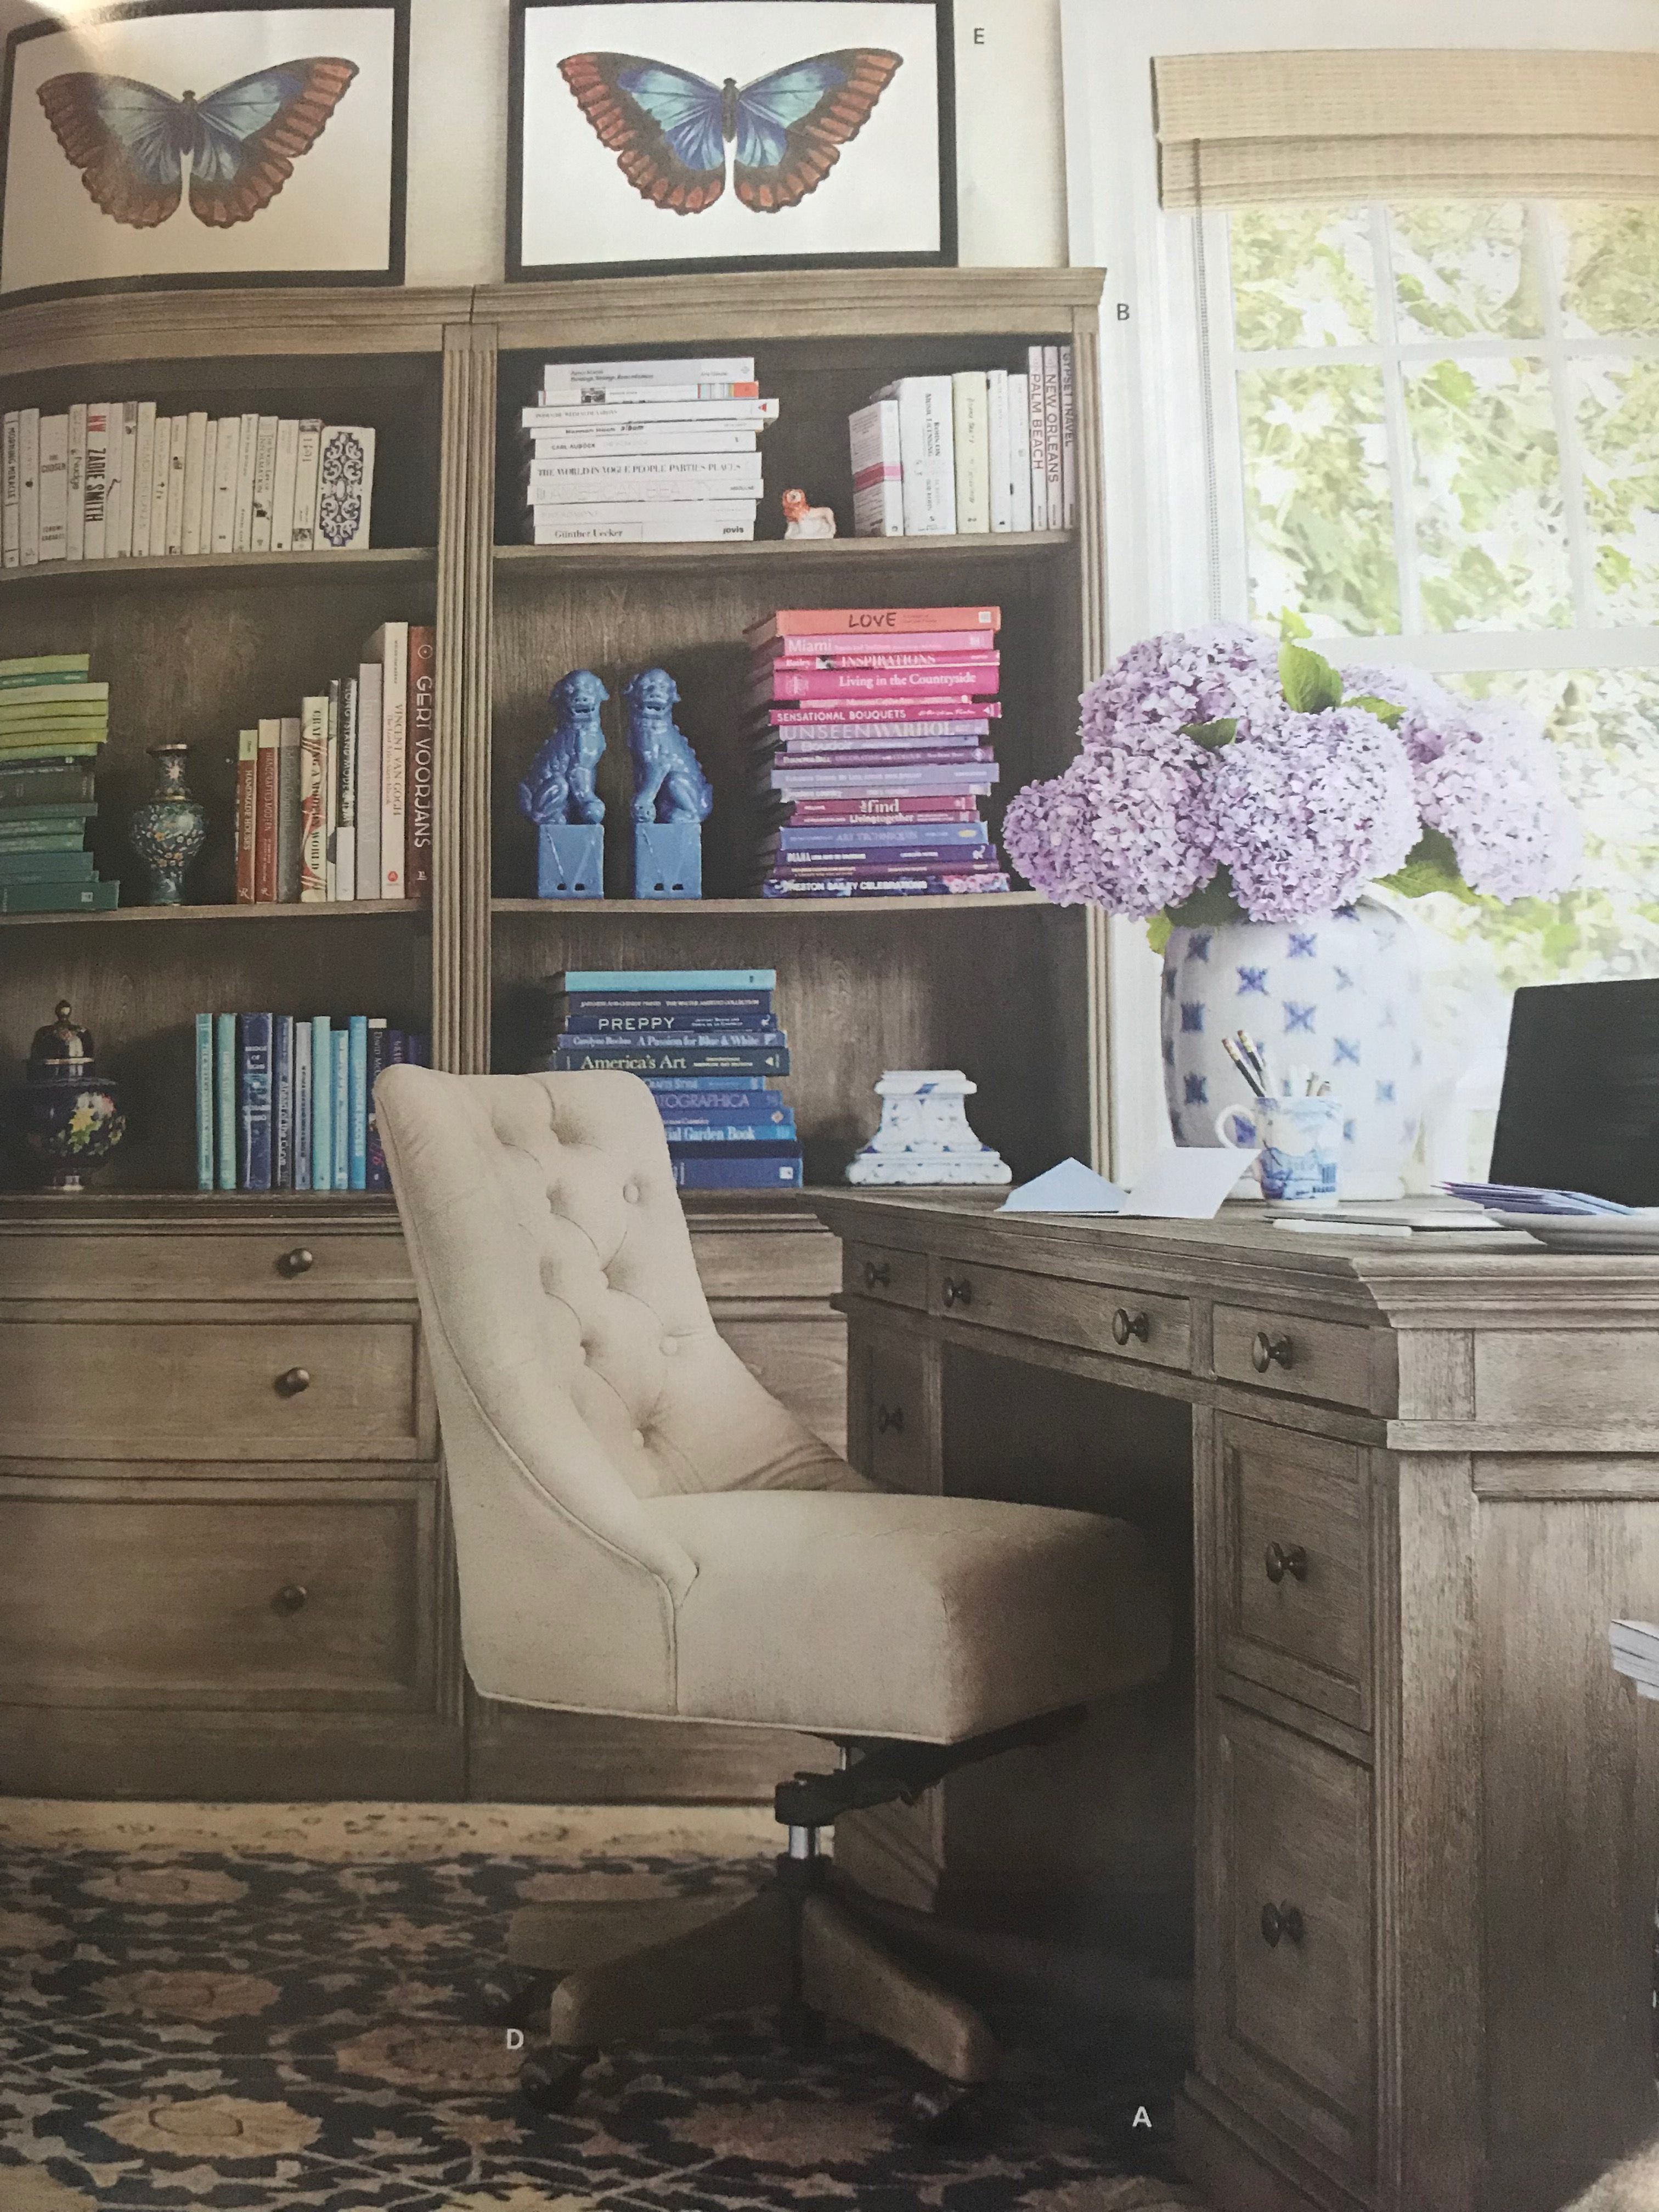 Office dreams! Colors, Wood, rug. pottery barn did it